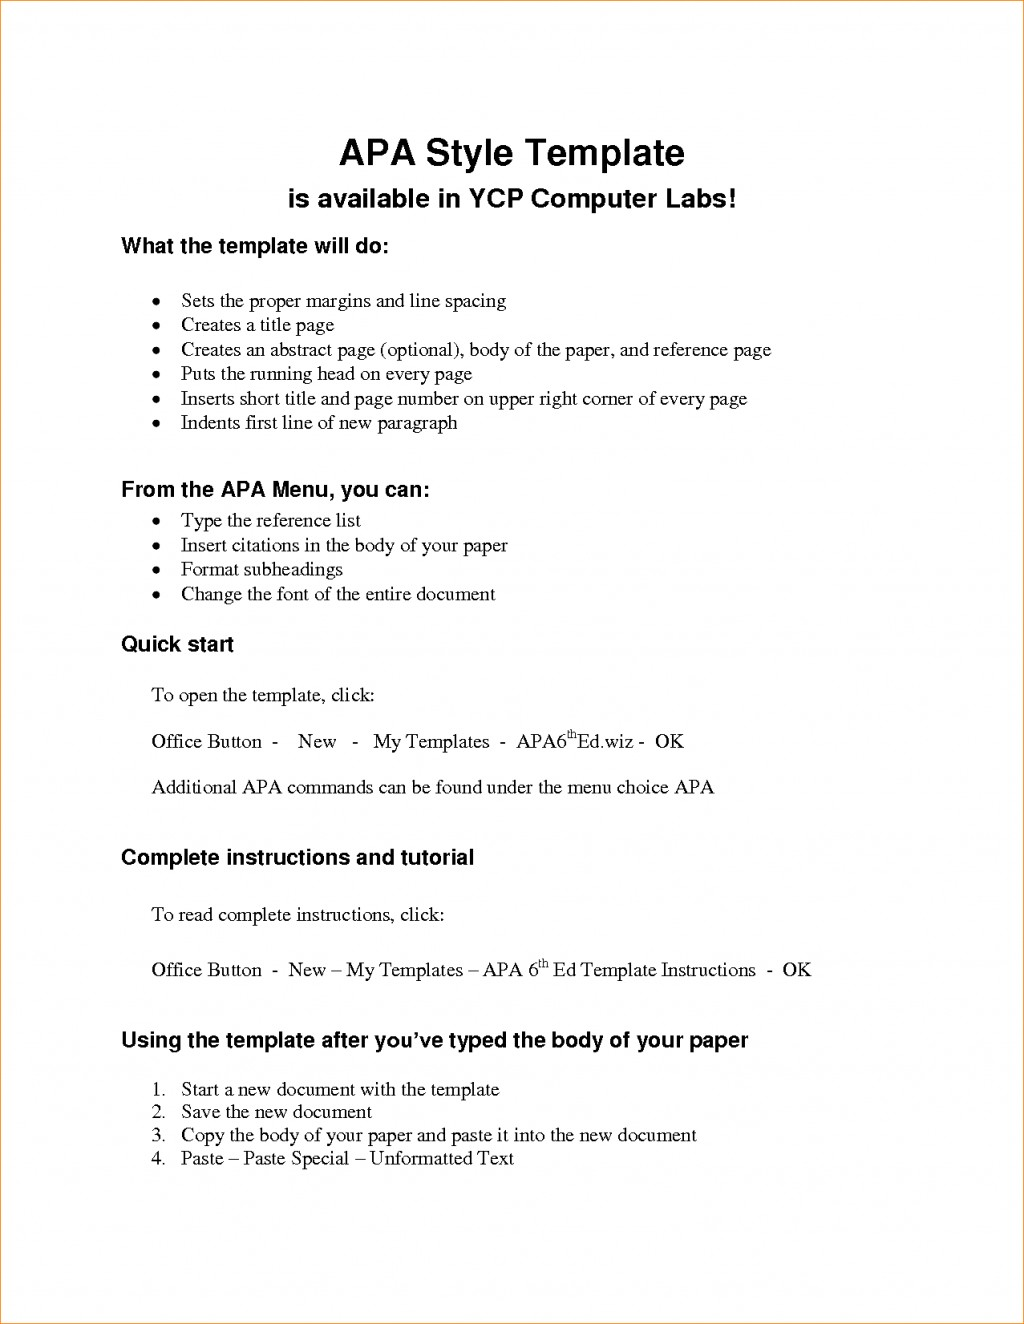 012 Research Paper Outline Template Apa How To Make Format Breathtaking Pdf Large